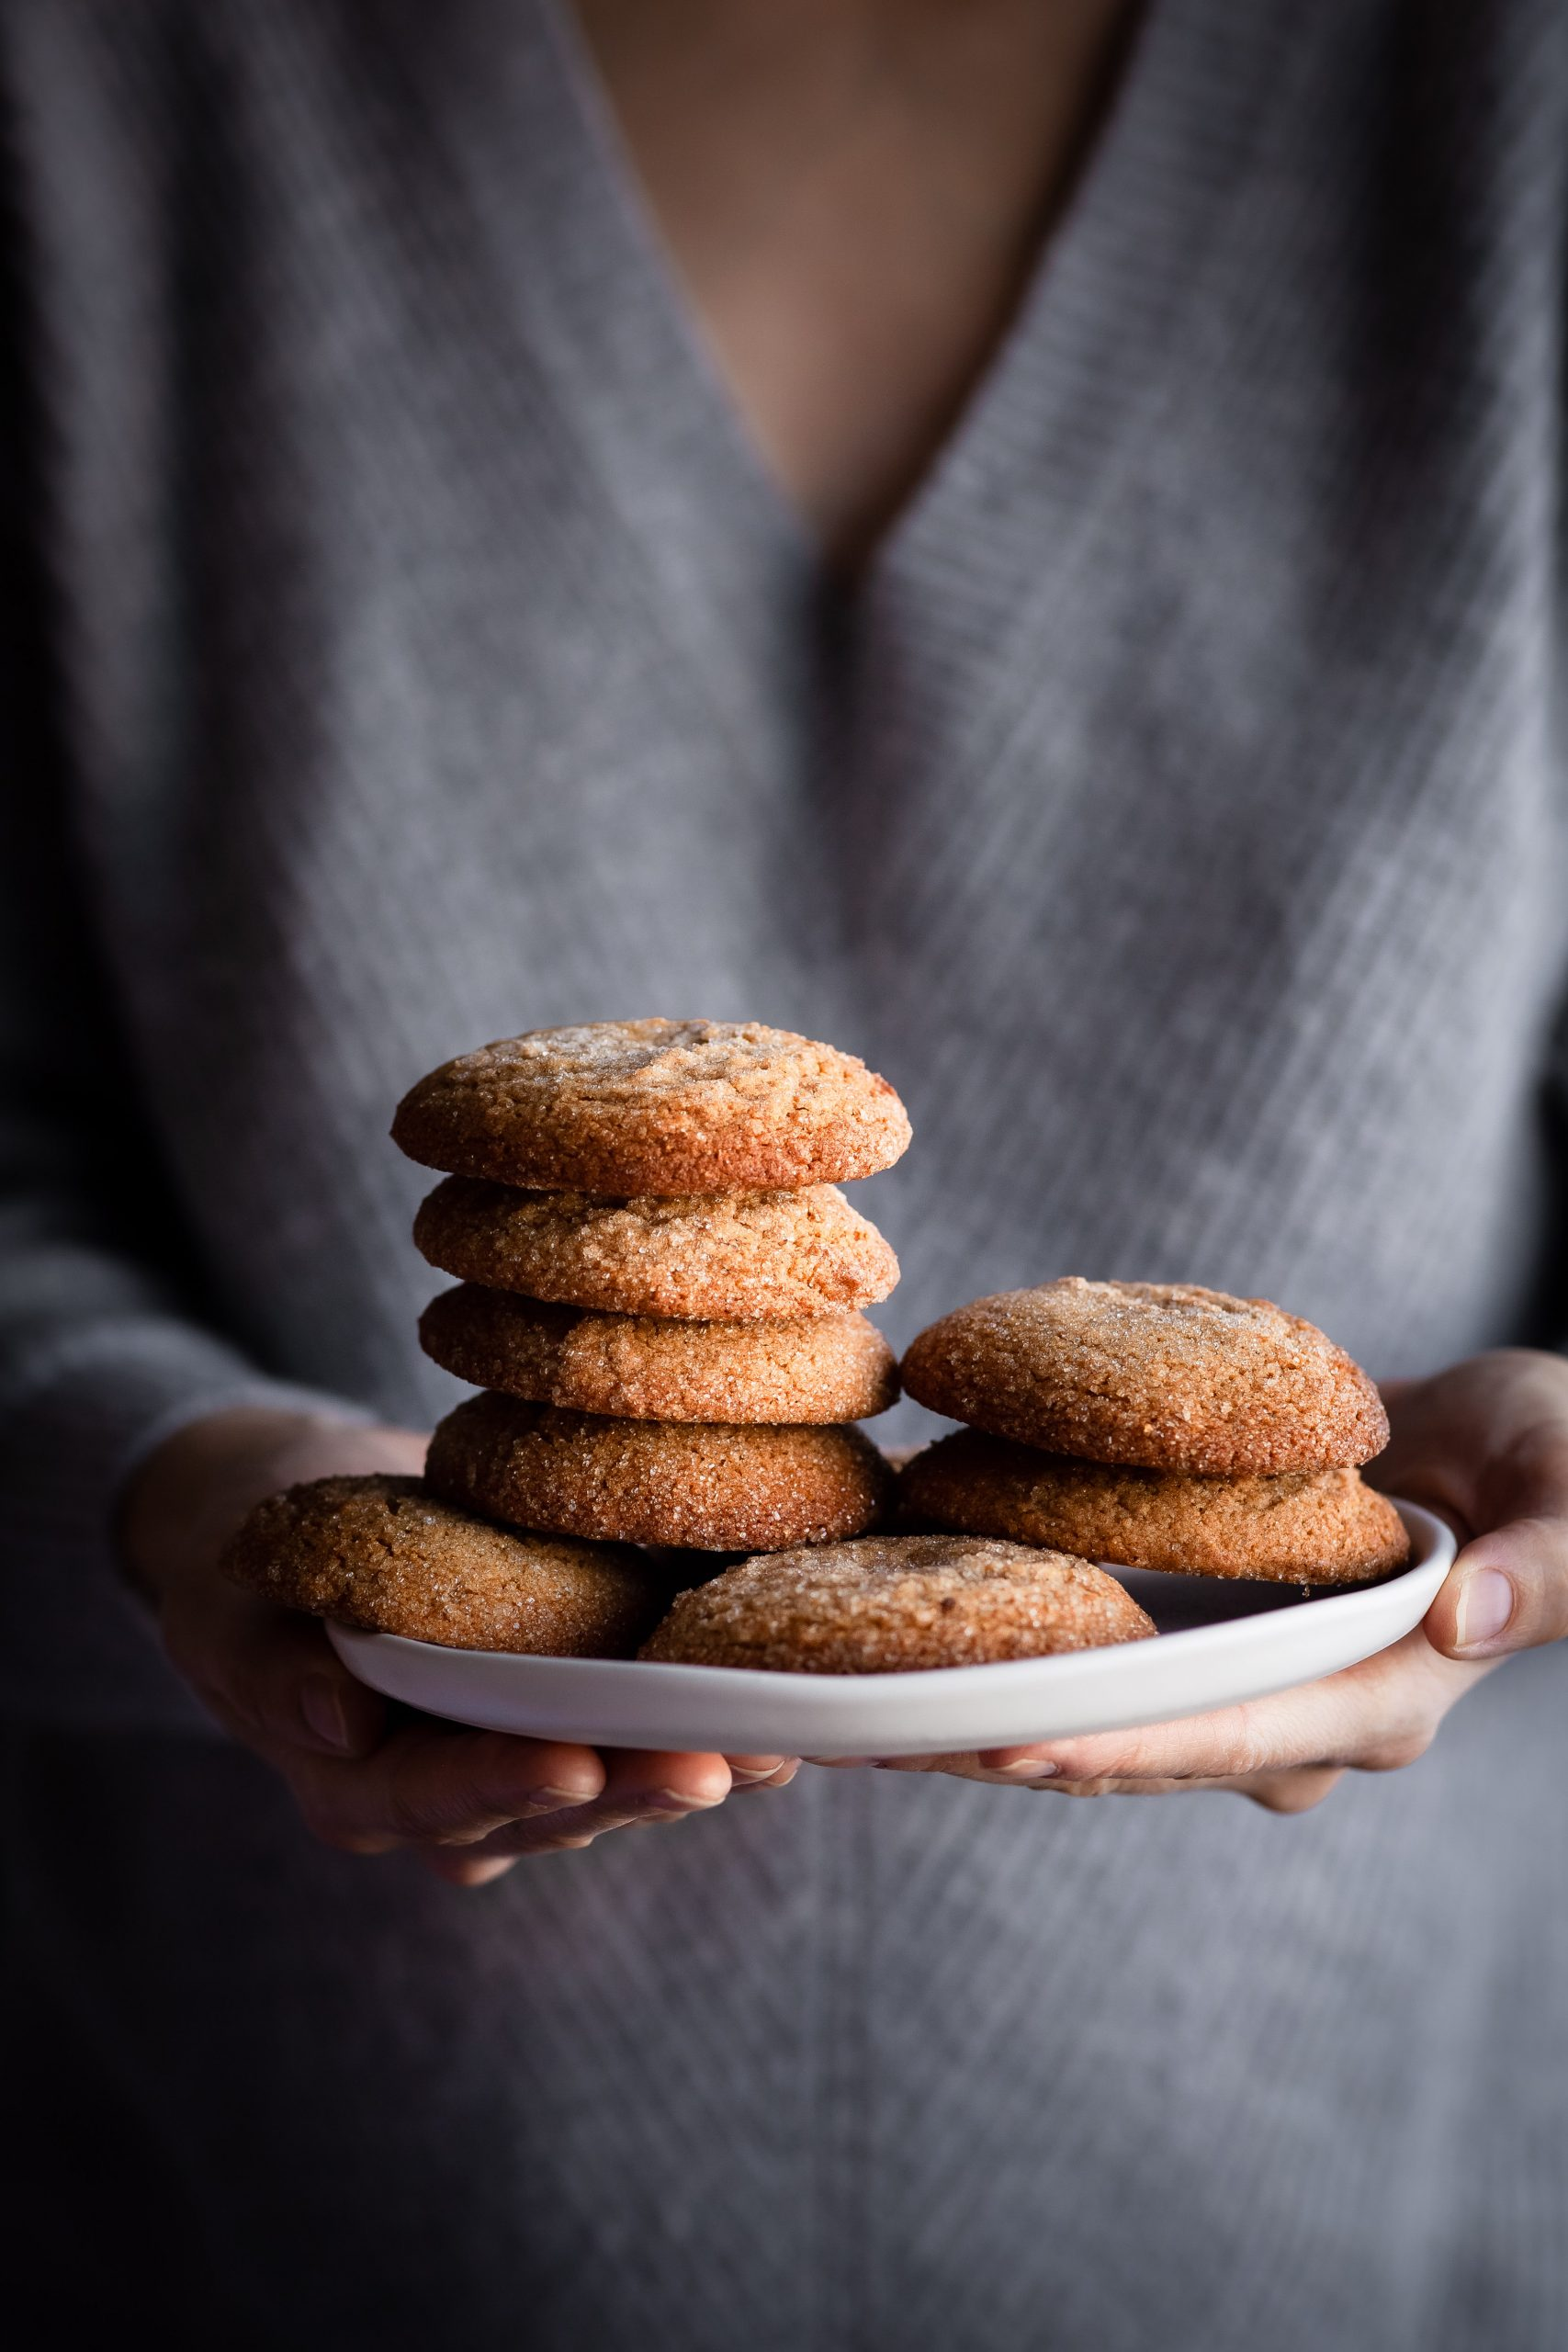 a person holding a plate of vegan ginger spice cookies.